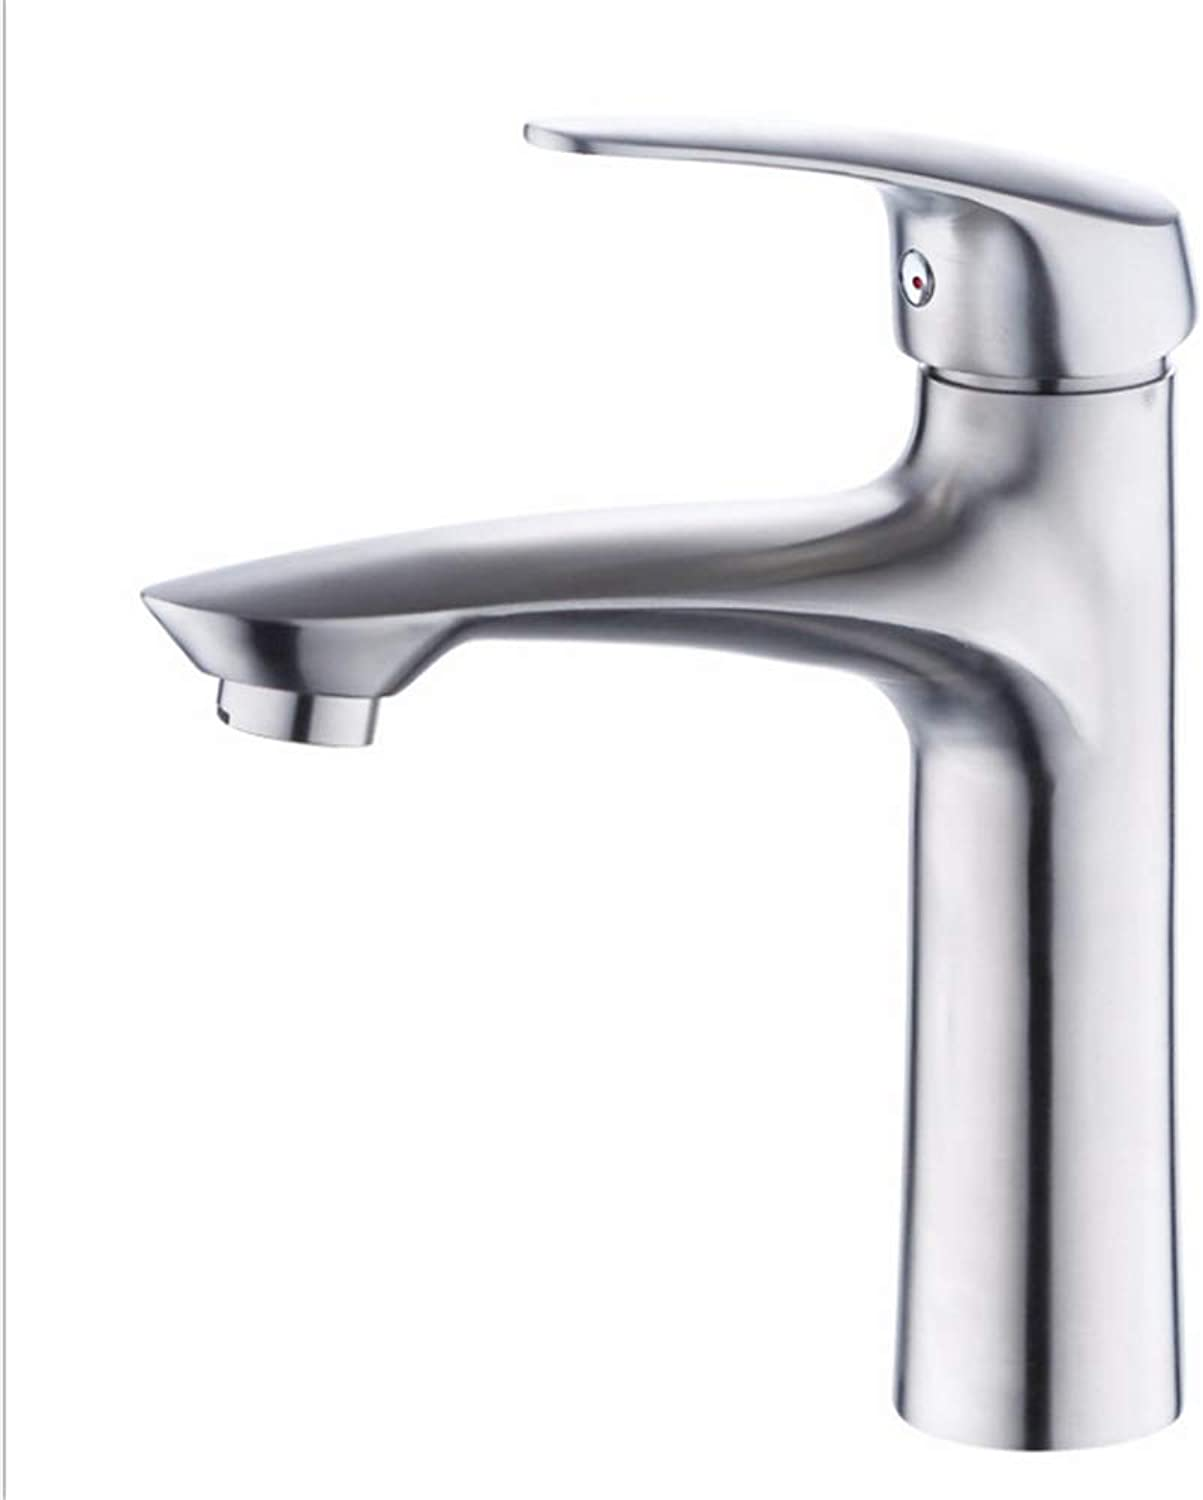 Counter Drinking Designer Archsingle Hole 304 Stainless Steel Face Basin Cold and Hot Water Faucet Mixing Valve